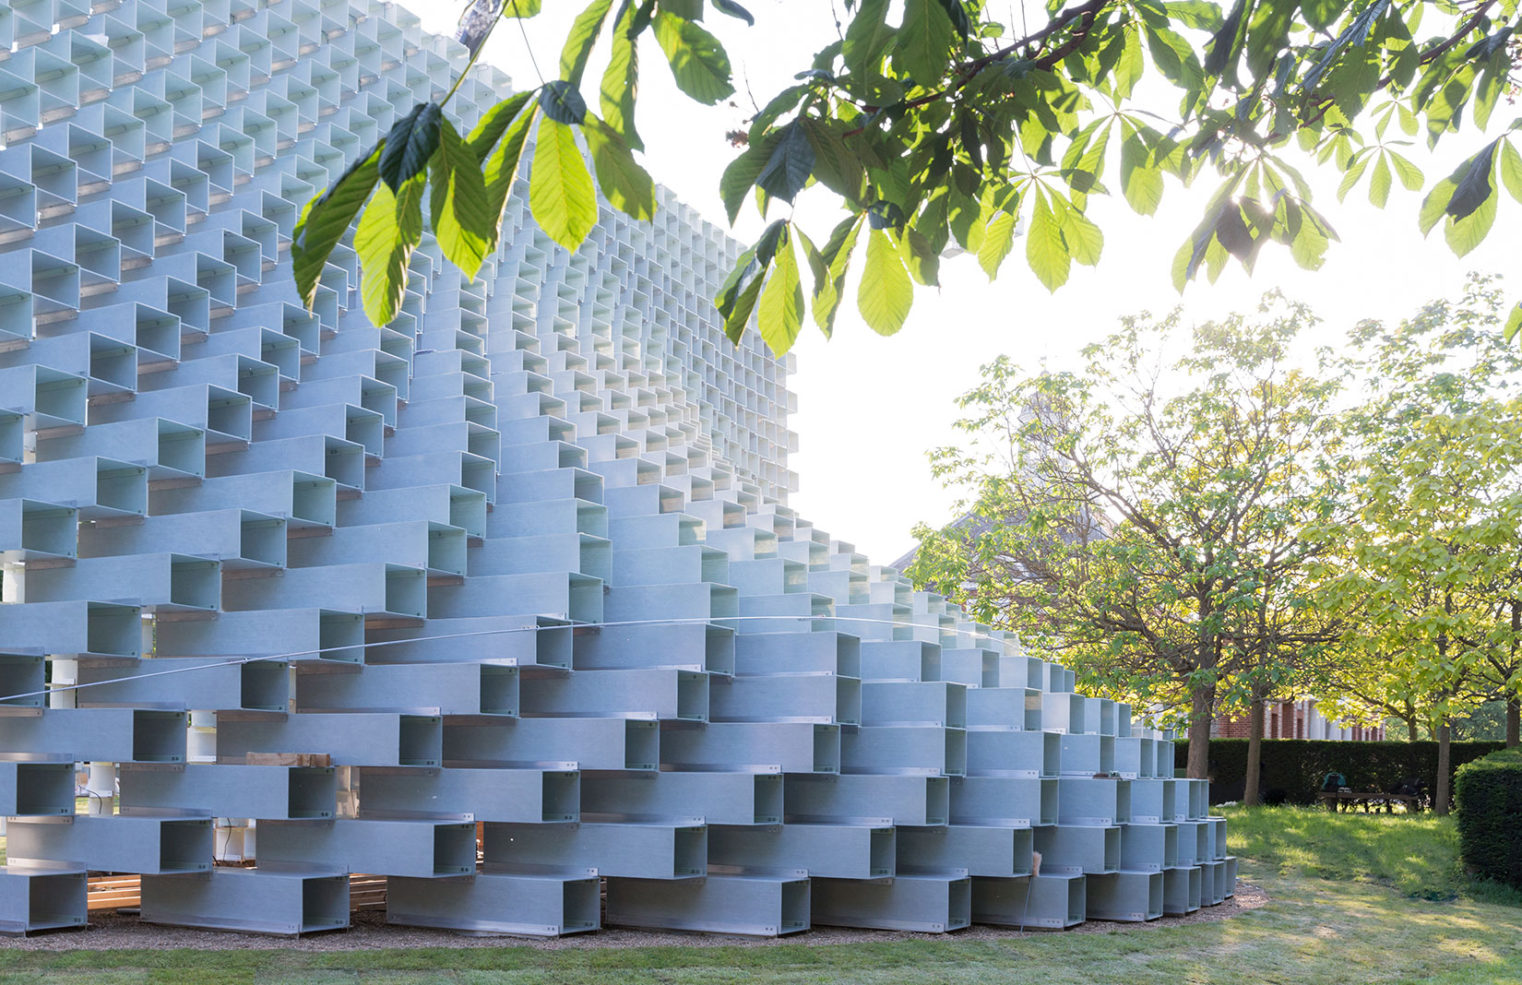 Serpentine Pavilion 2016, designed by Bjarke Ingels Group (BIG). Photography: © Iwan Baan